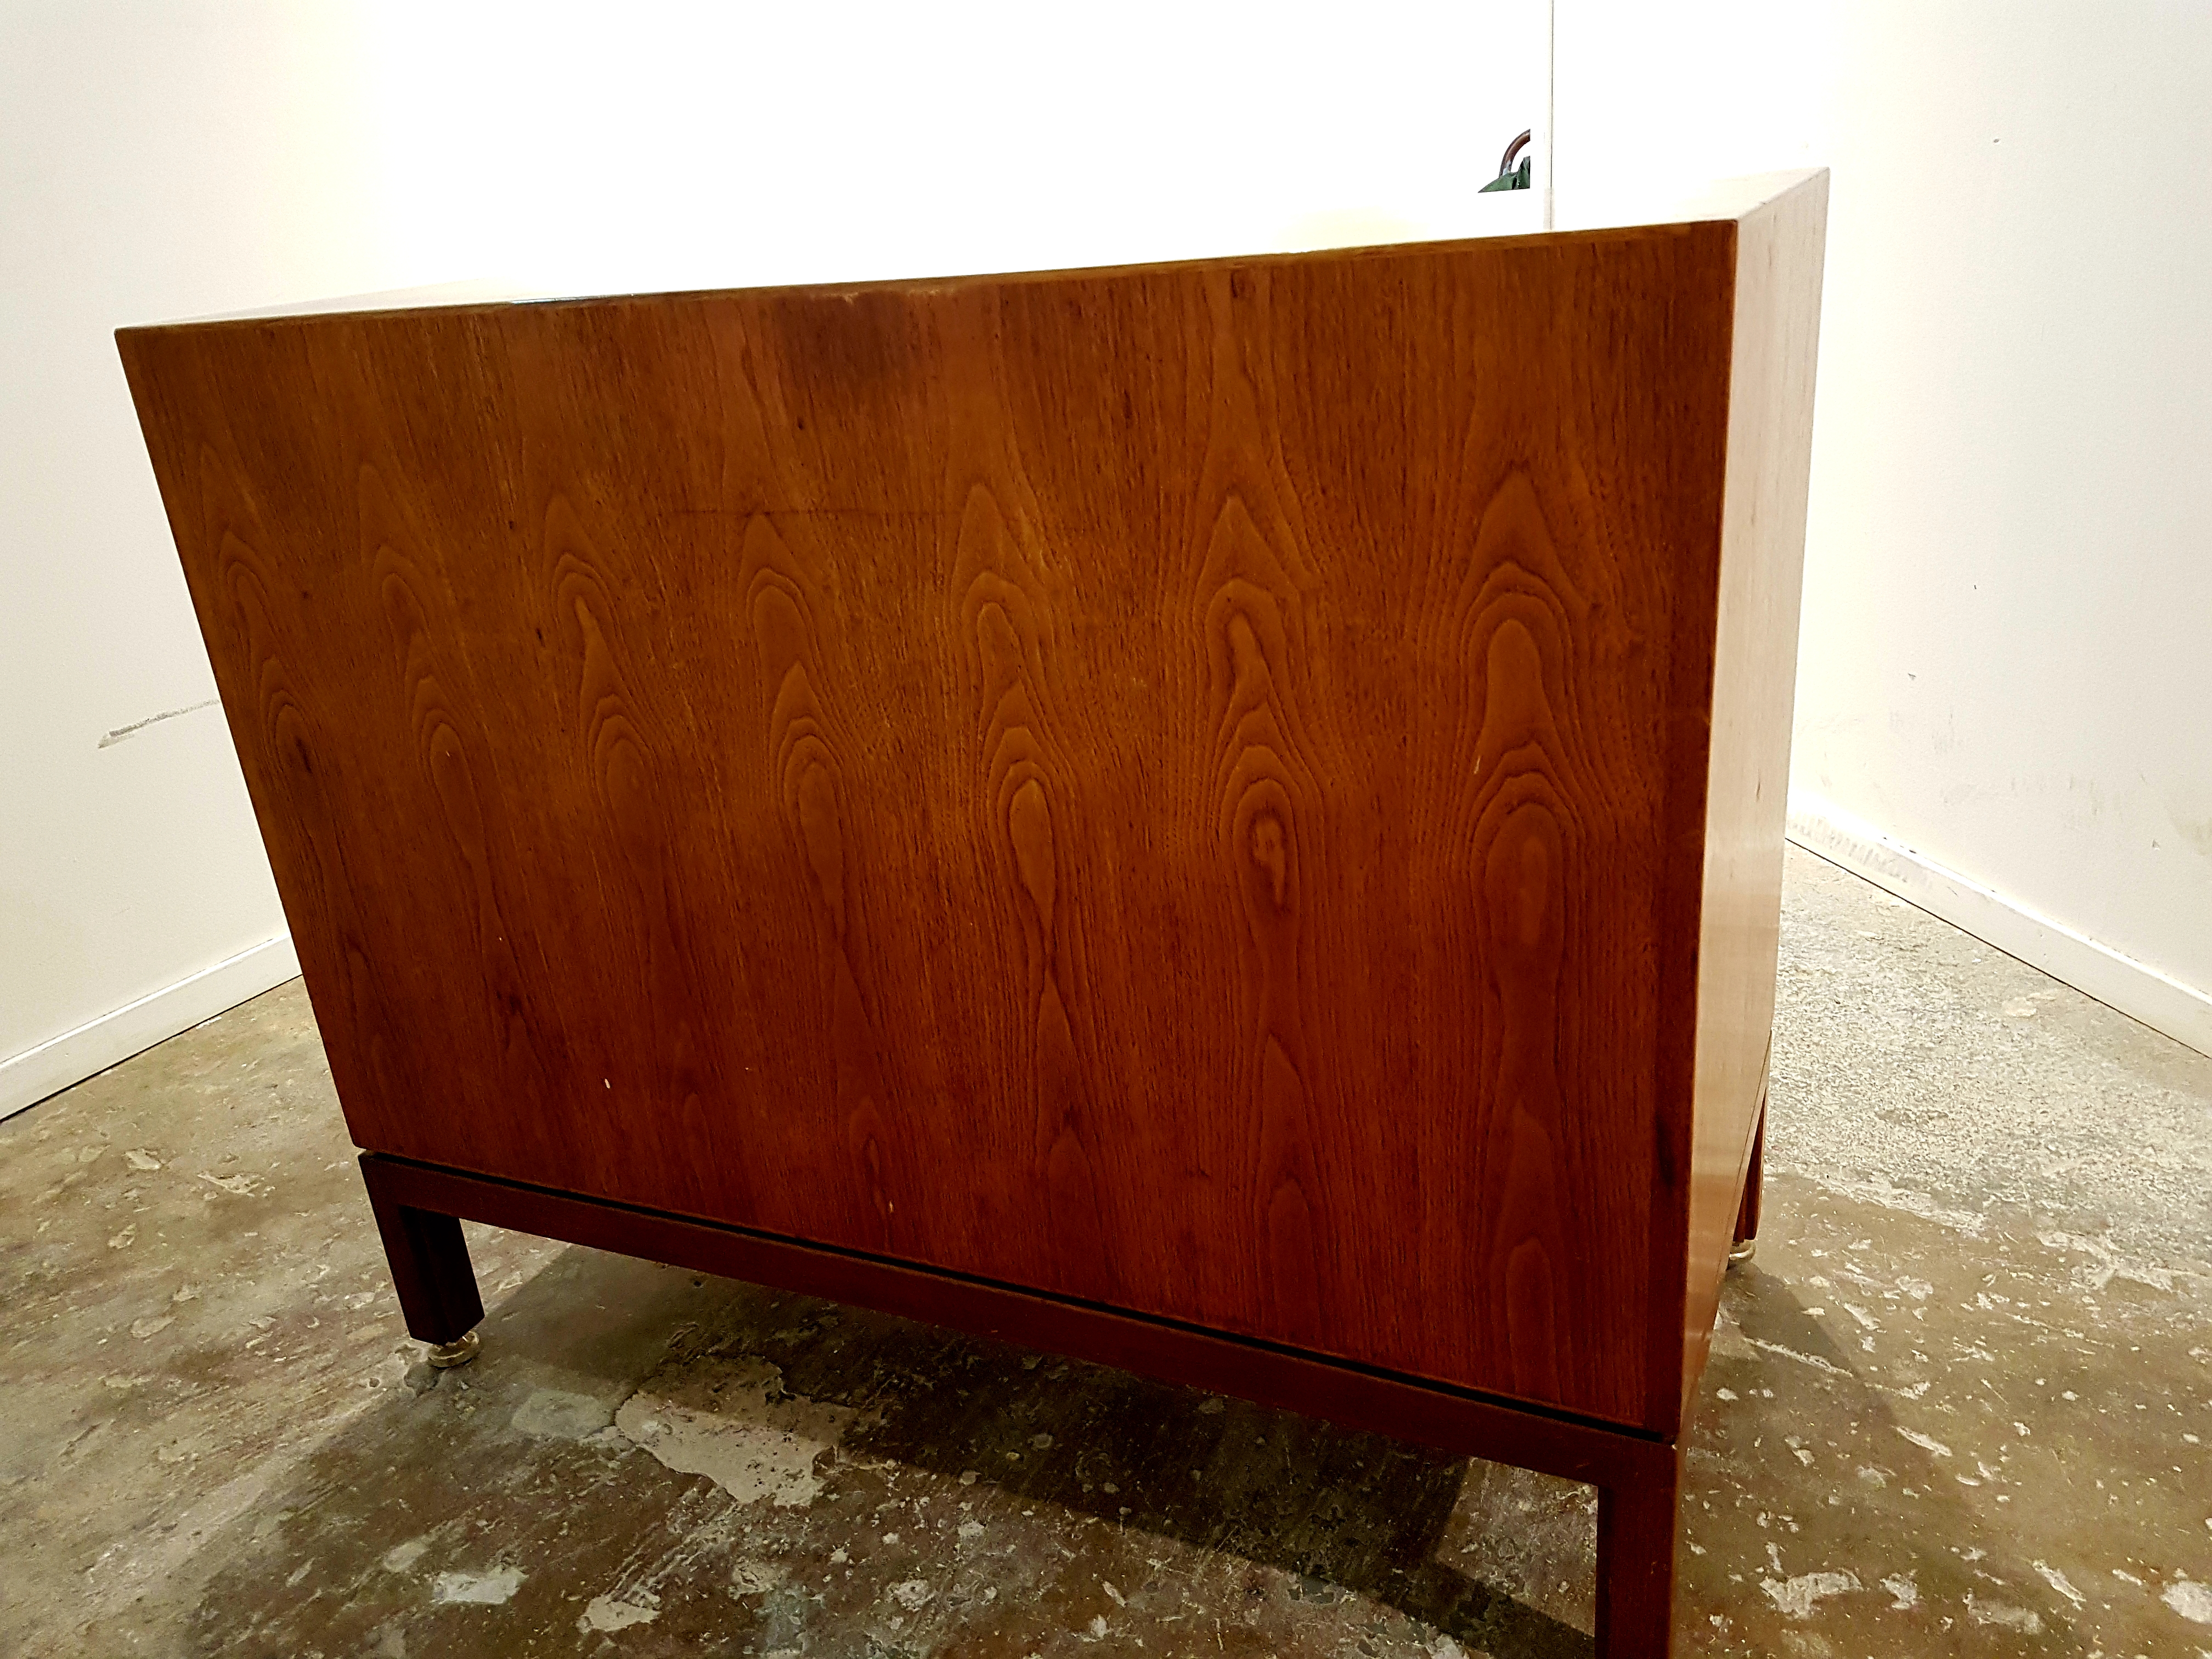 Vintage Mid Century Modern Small Walnut Cabinet Credenza Sideboard By Jens Risom 1970s Vintagonist